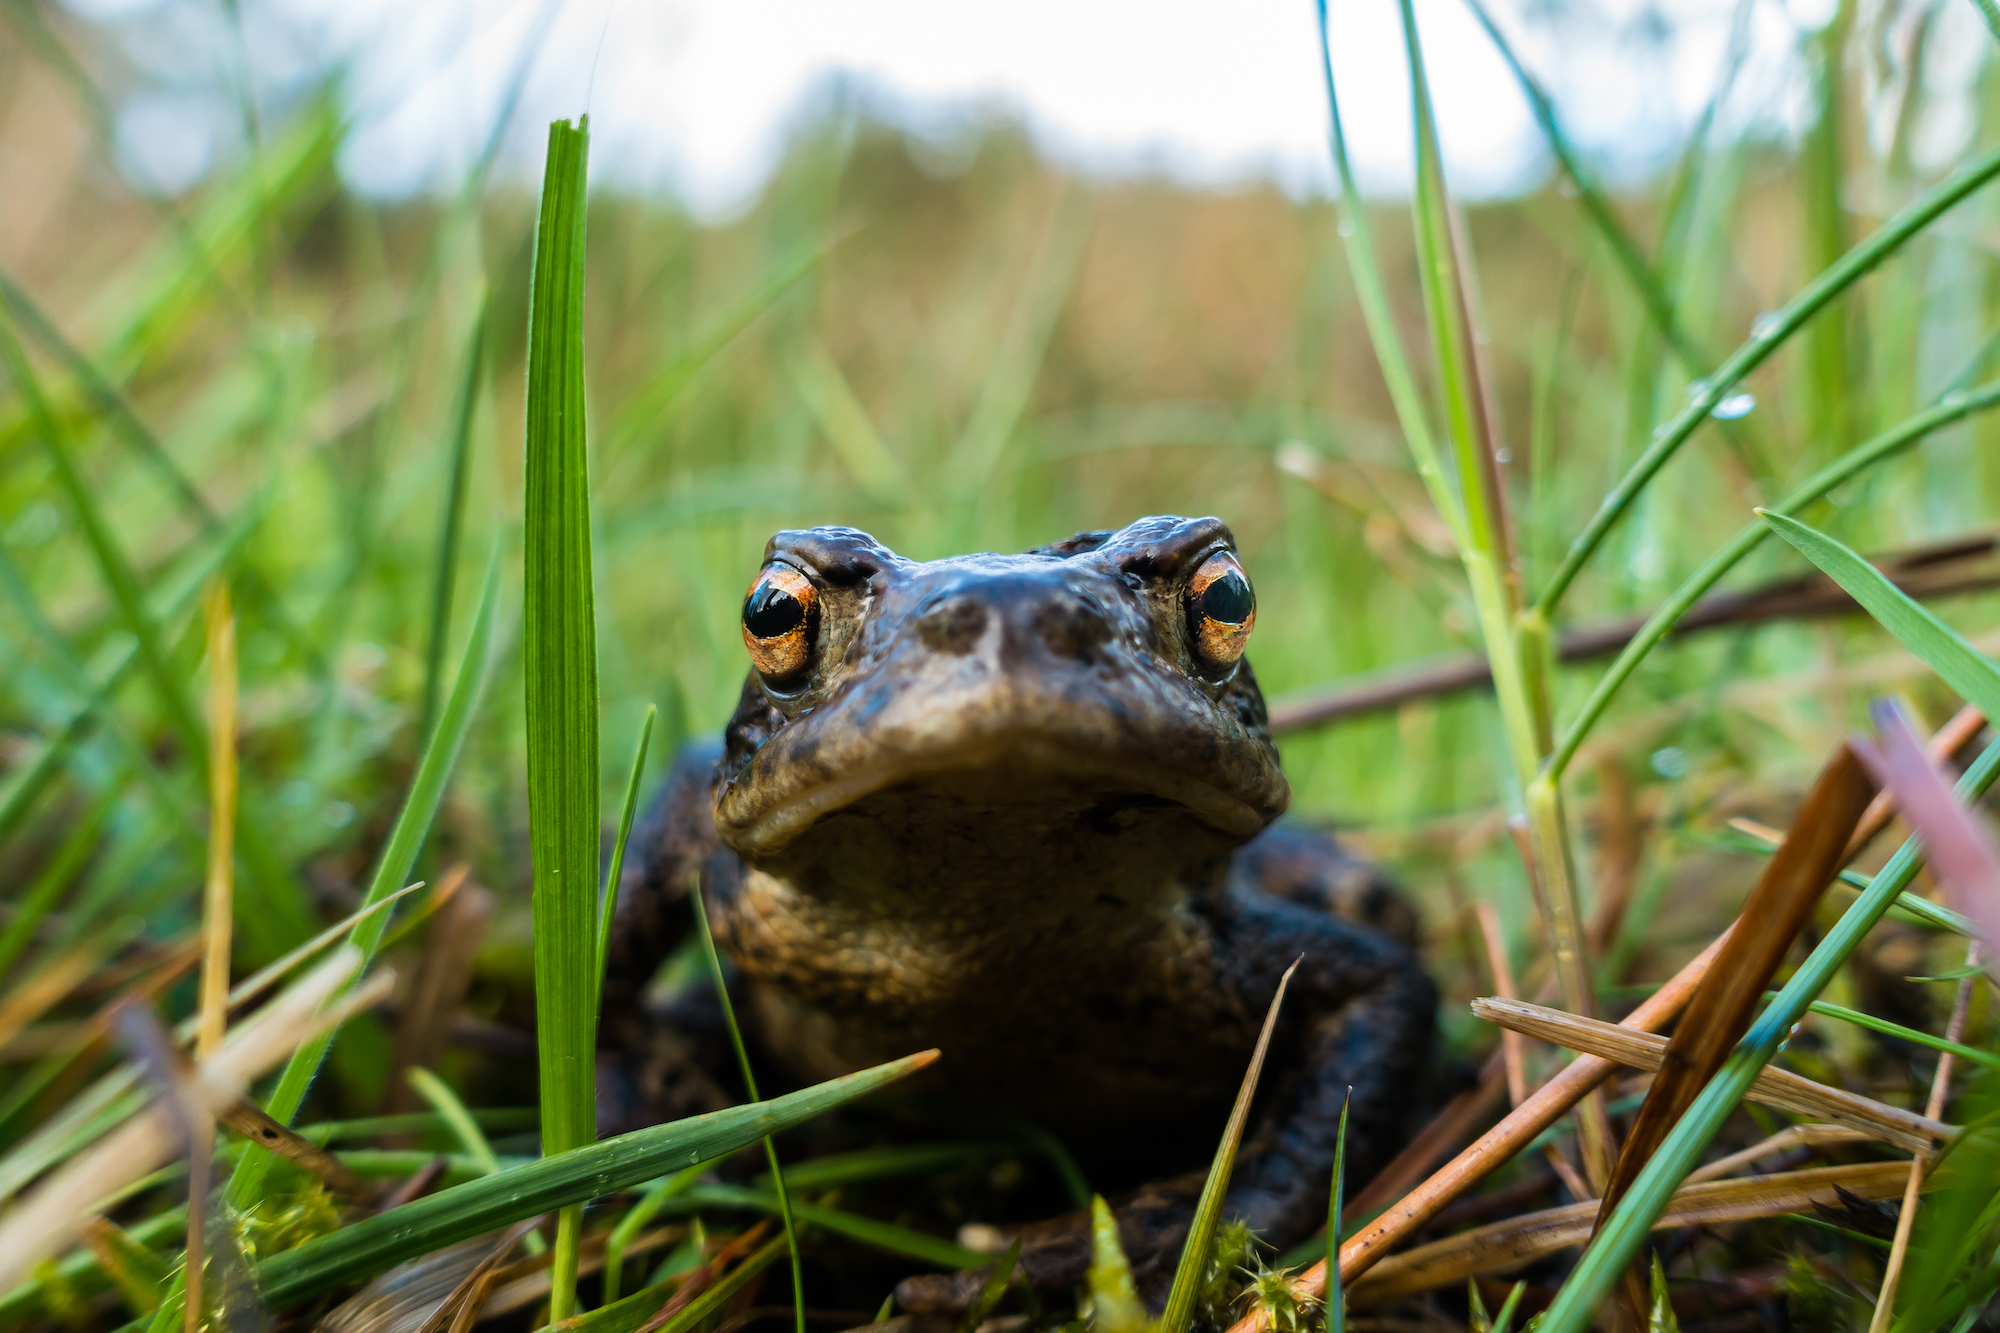 (339) Wild Common Toad, Bufo Bufo, in forest near Lairg, Sutherland, Scotland.jpg